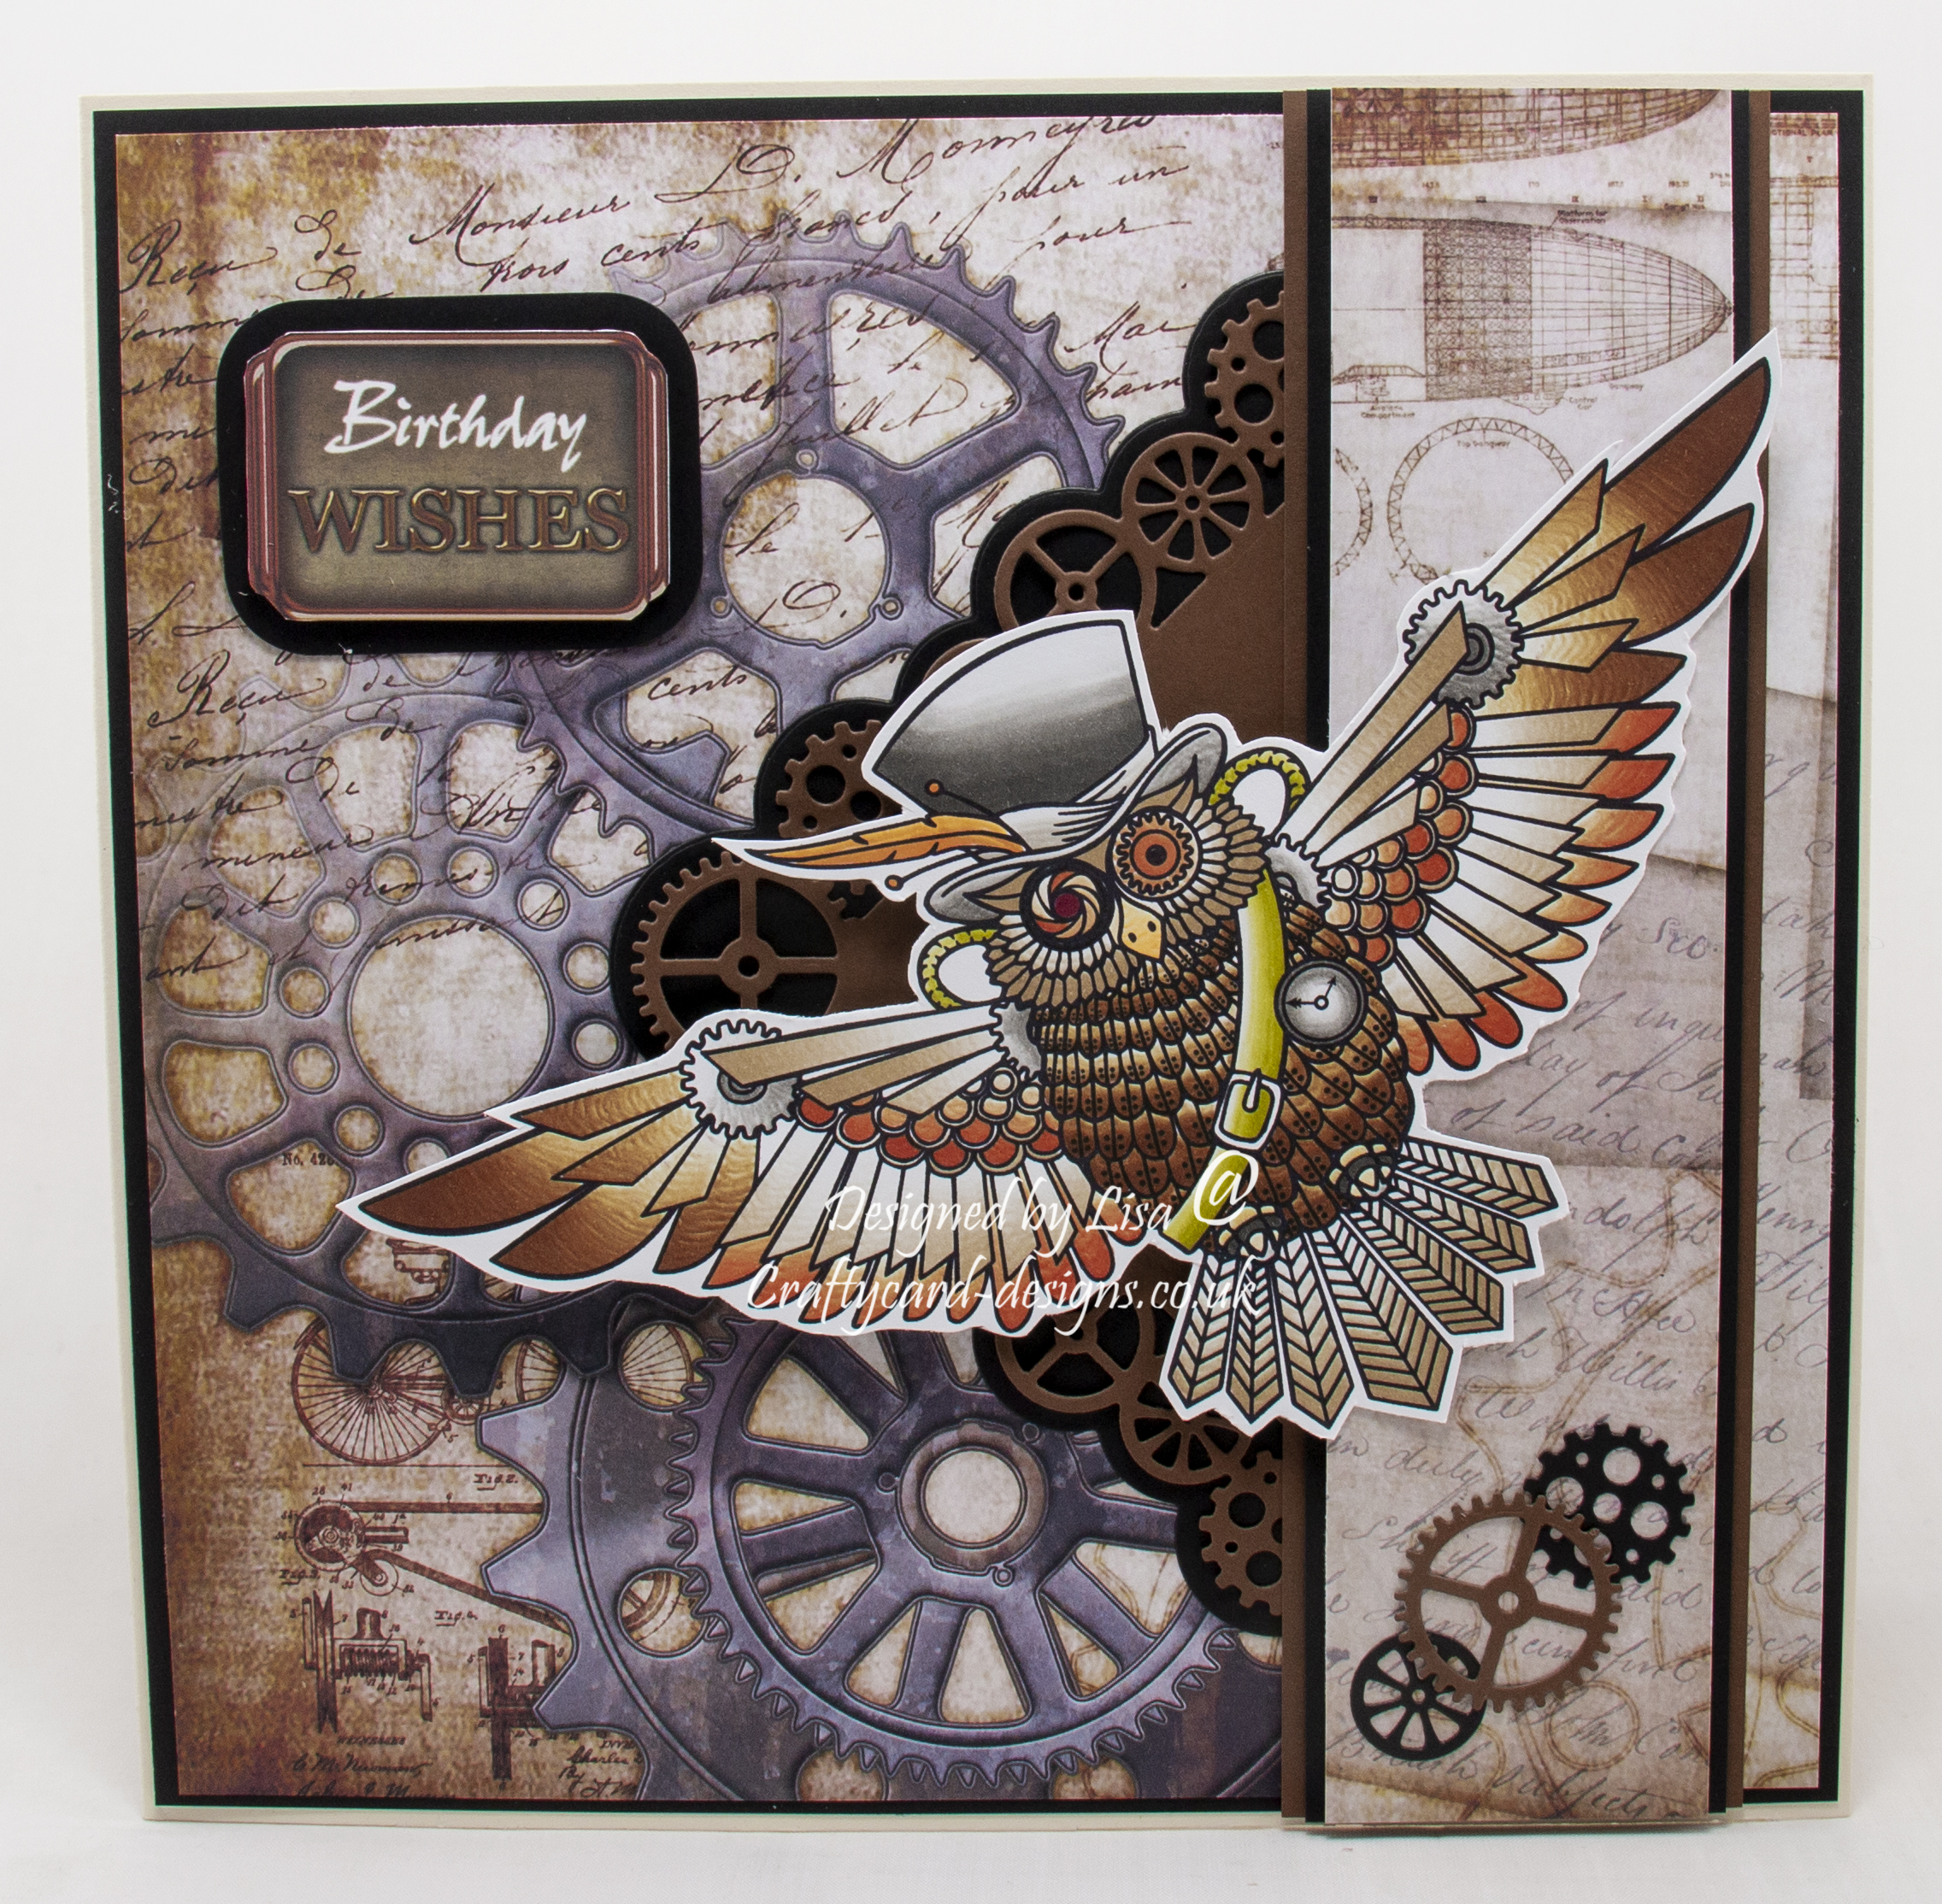 For my card I have used a digi image from The Art And Creations Of Lauren C Waterworth called Steampunk Owl